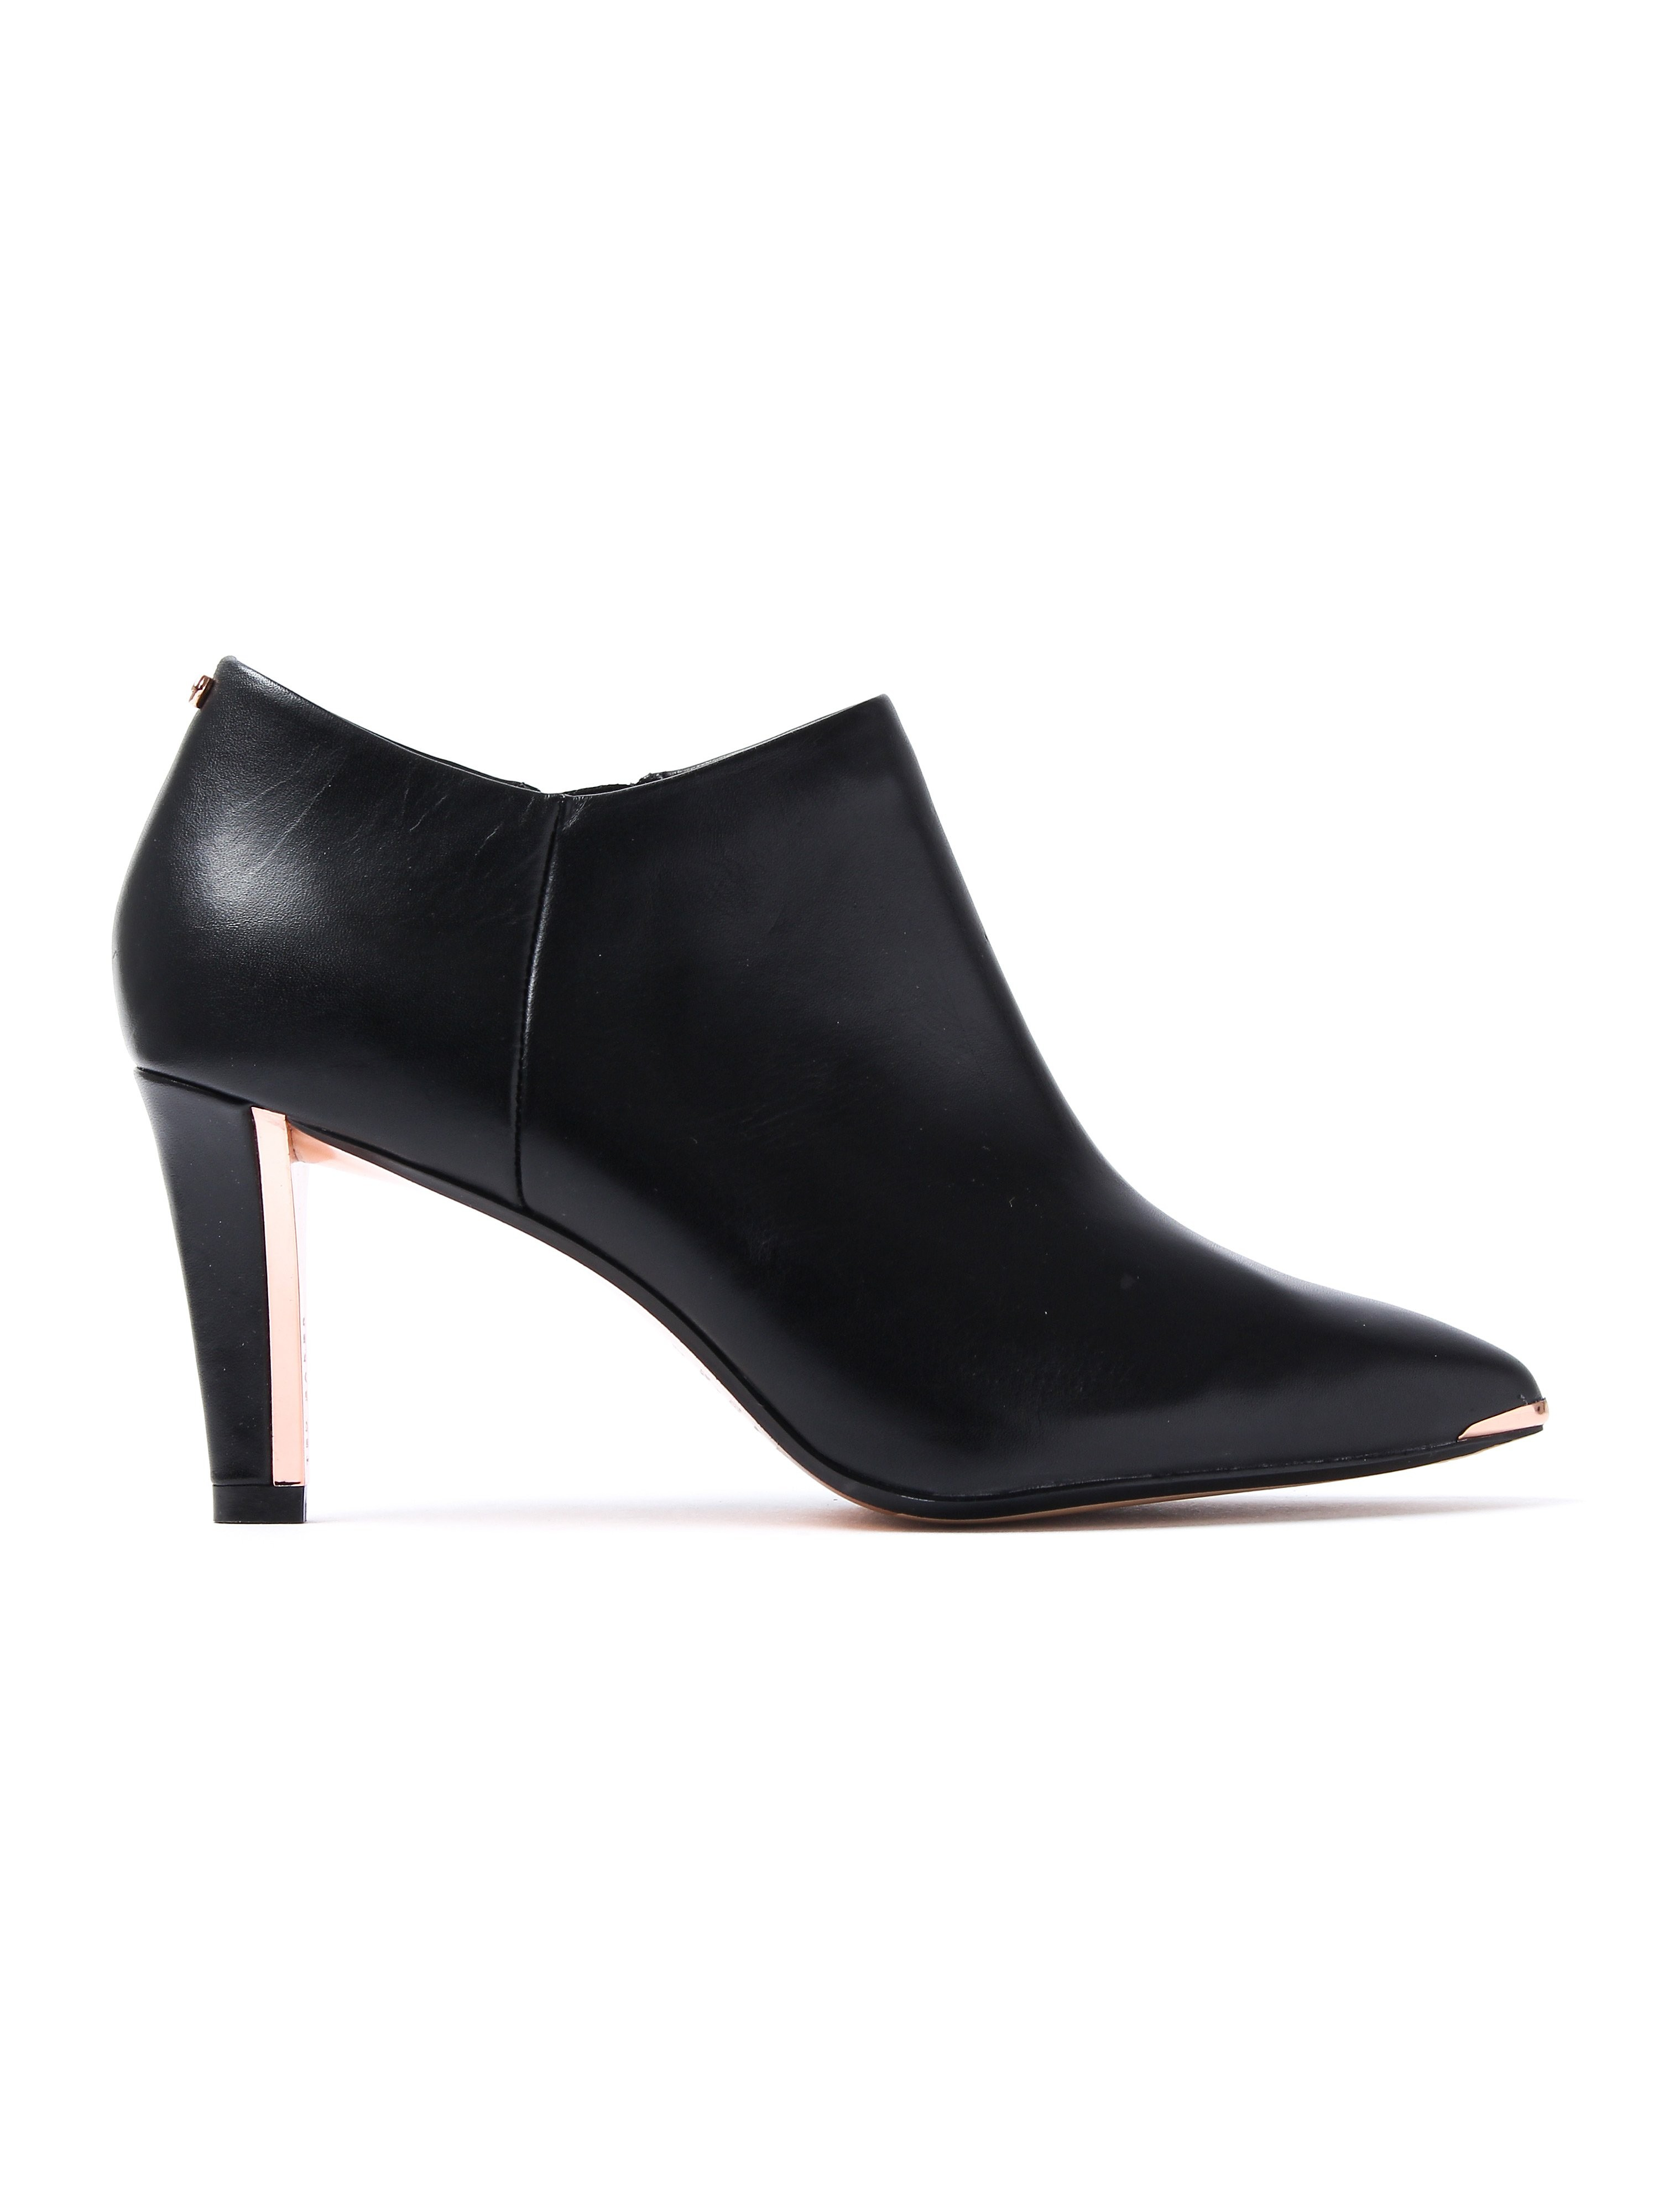 Ted Baker Women's Nyiri Ankle Boots - Black